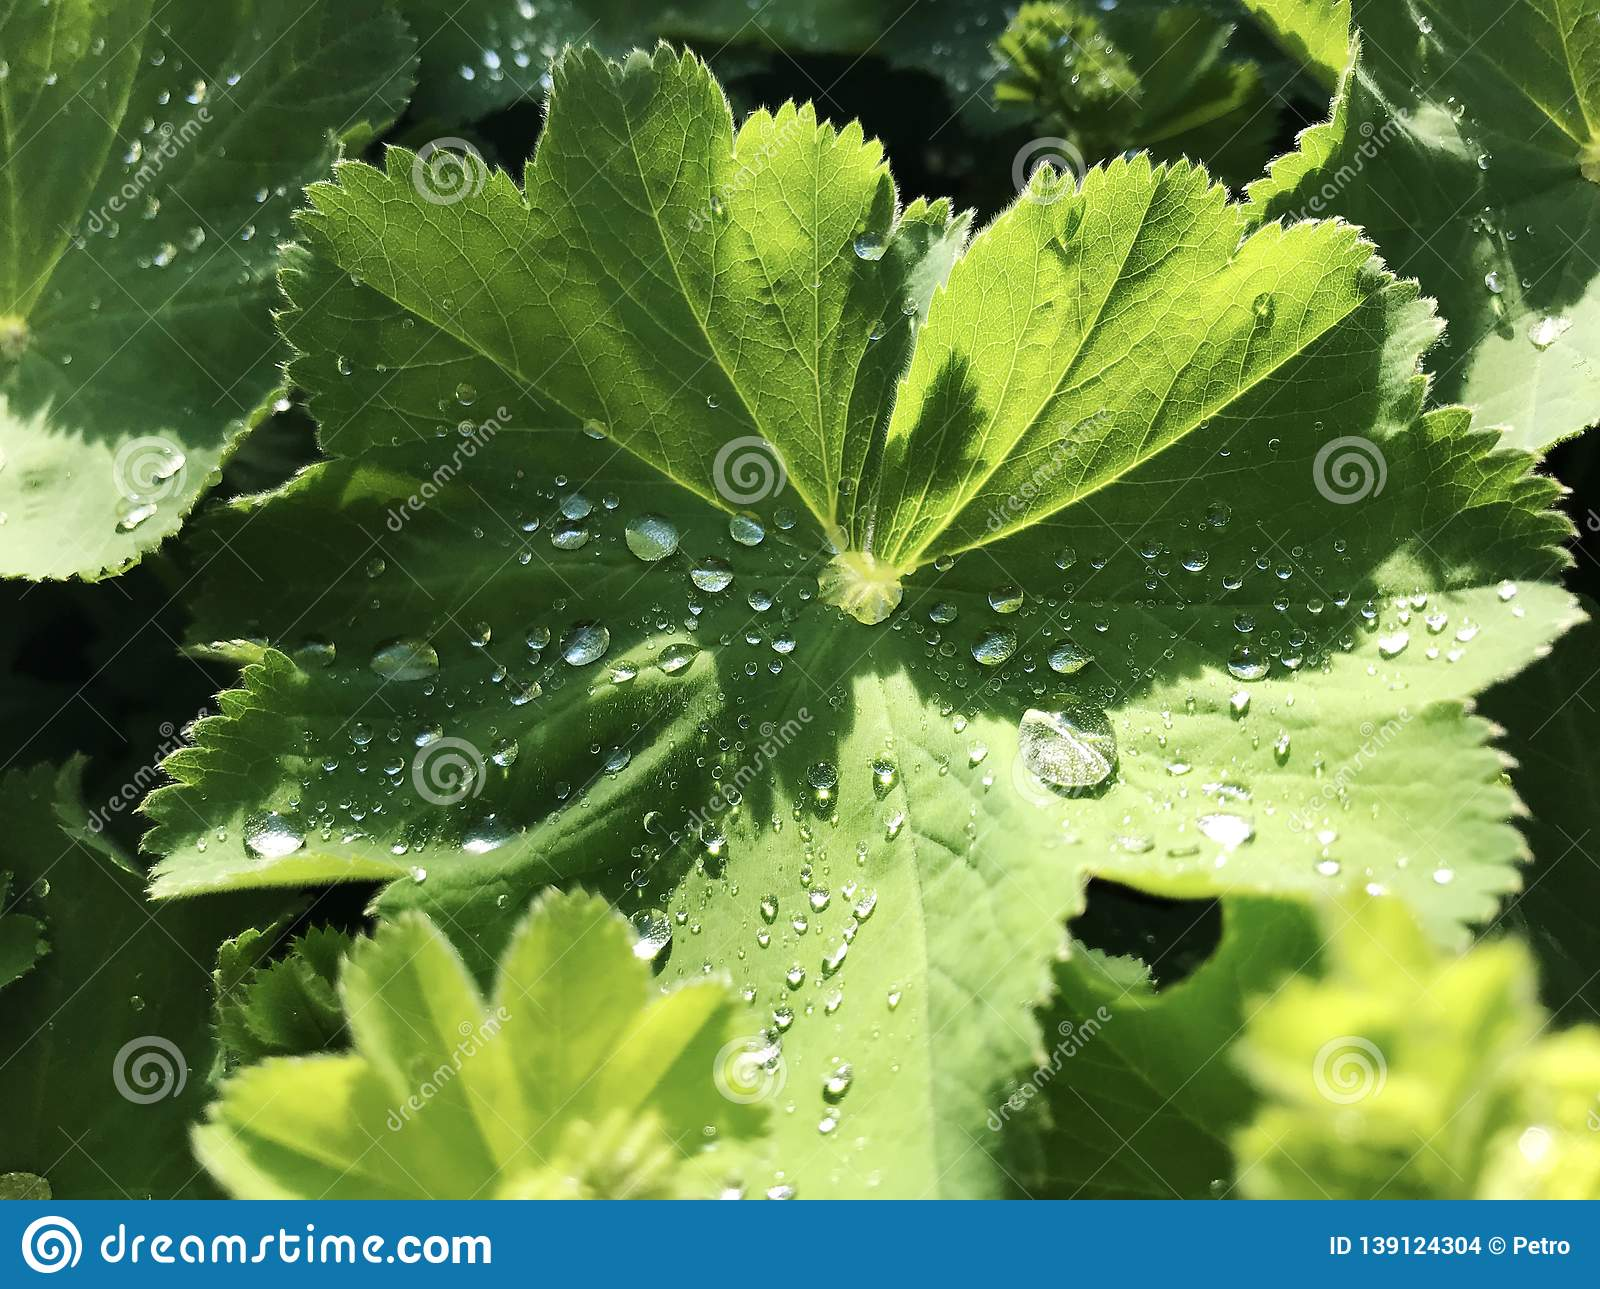 Morning dew drops on fresh green geranium leaves